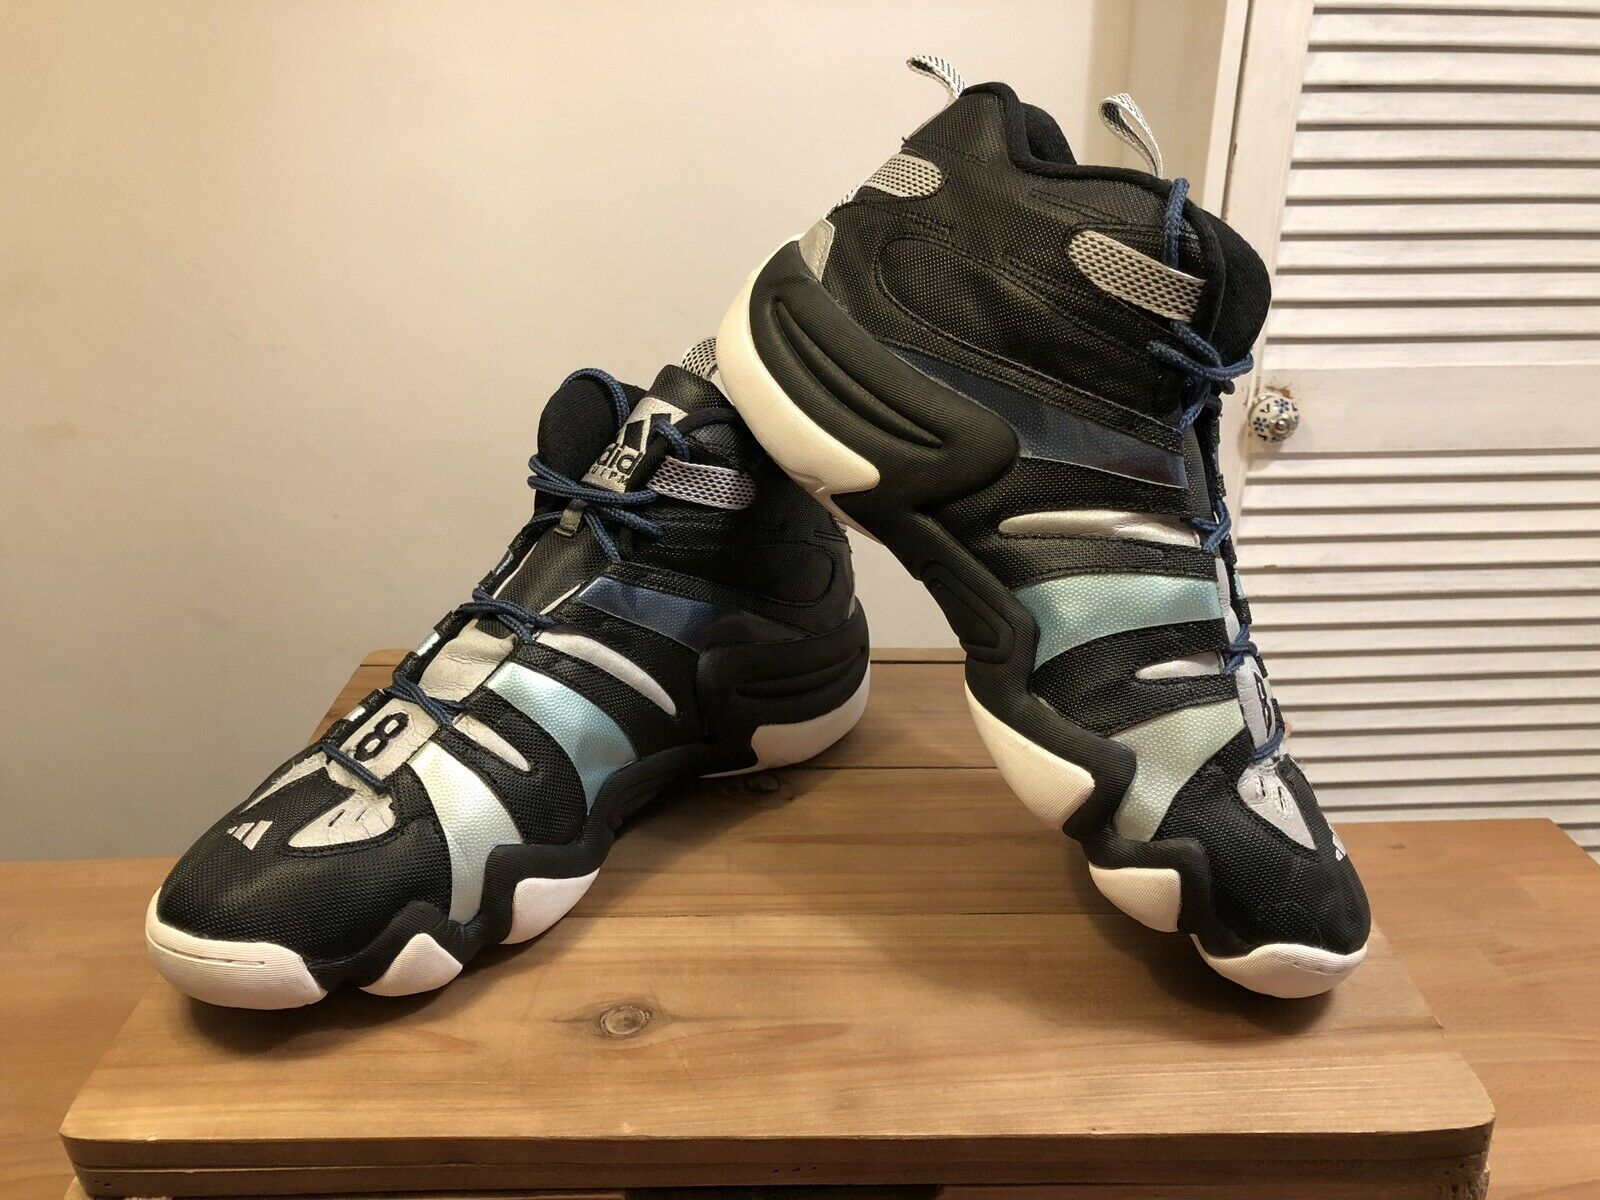 ADIDAS CRAZY 8 KOBE ONE TRAINERS BASKETBALL SHOES  New  Only